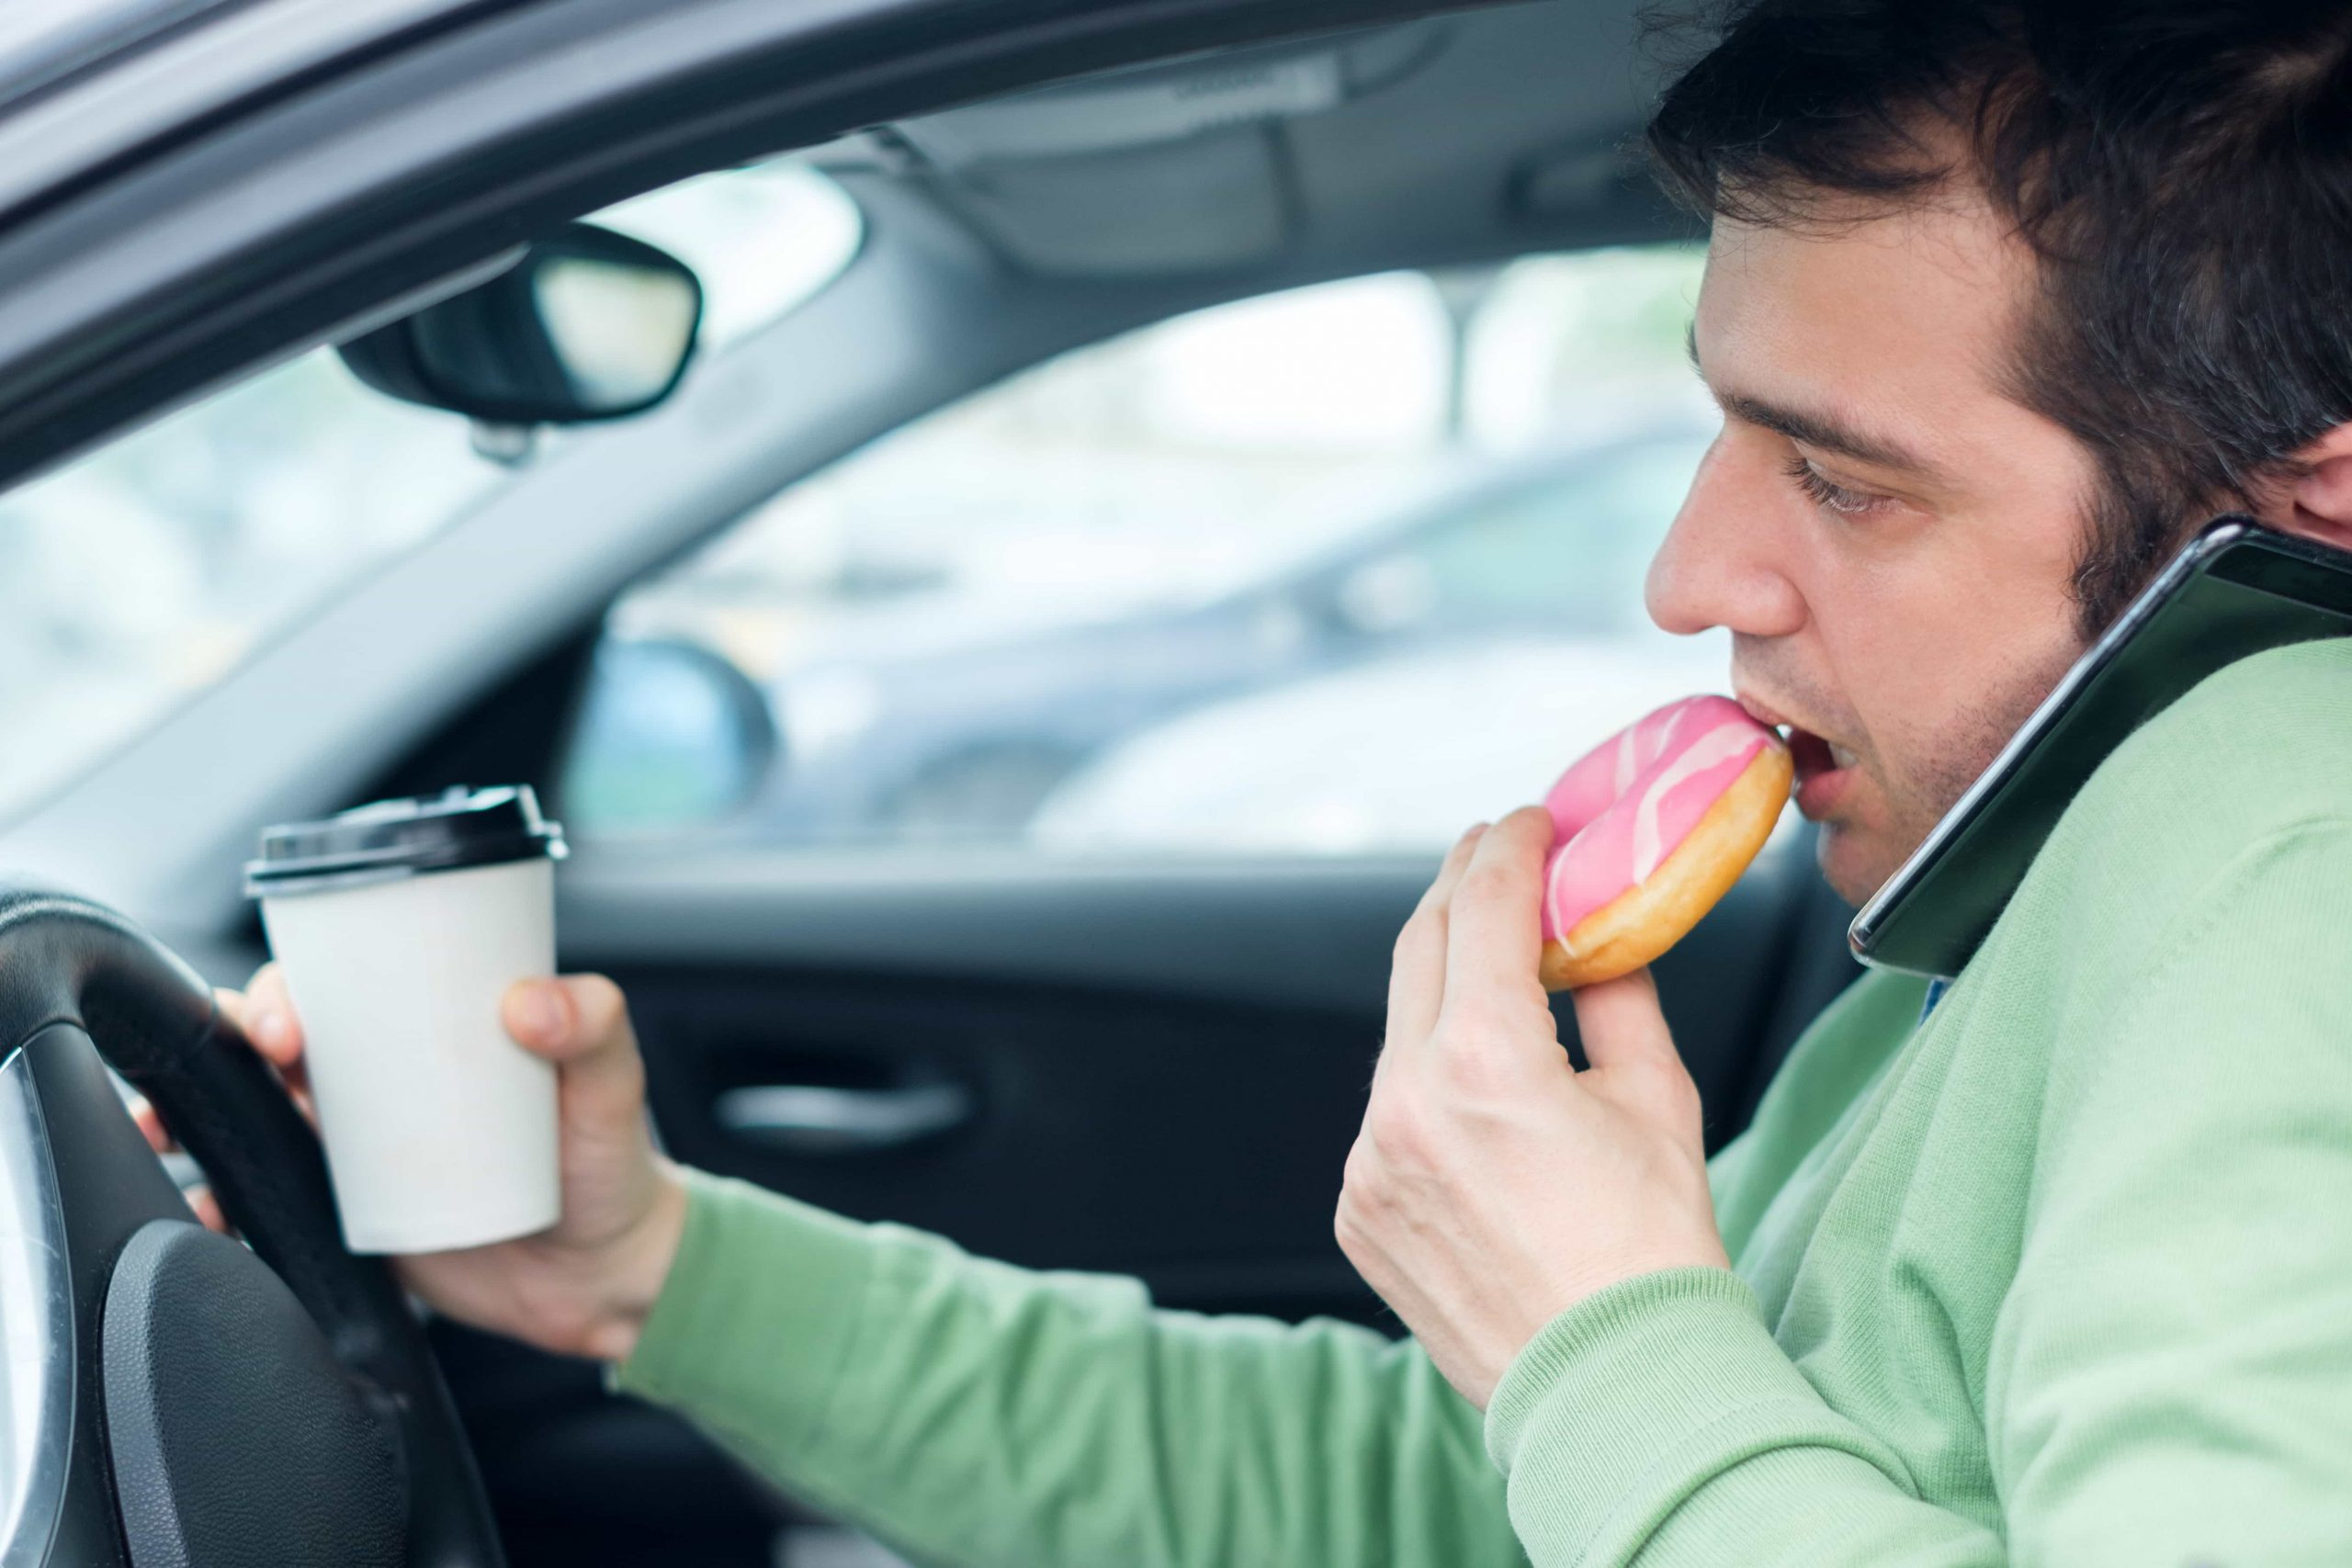 A man speaking on a mobile phone, eating a donut, and holding a cup of coffee in his hand while driving his car